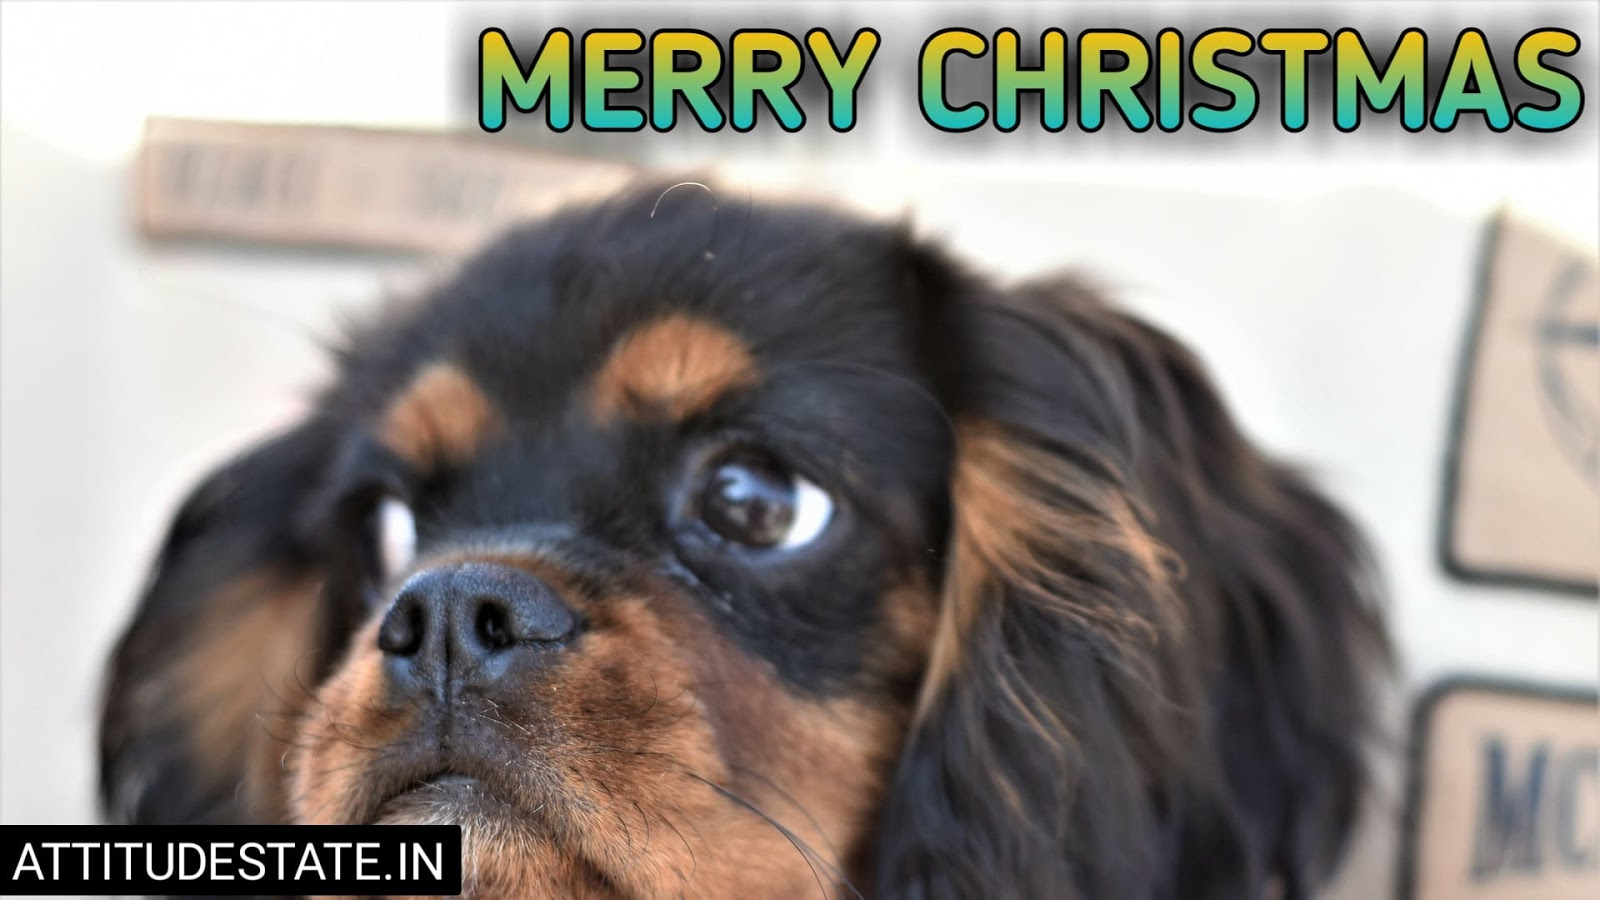 funny merry christmas cards